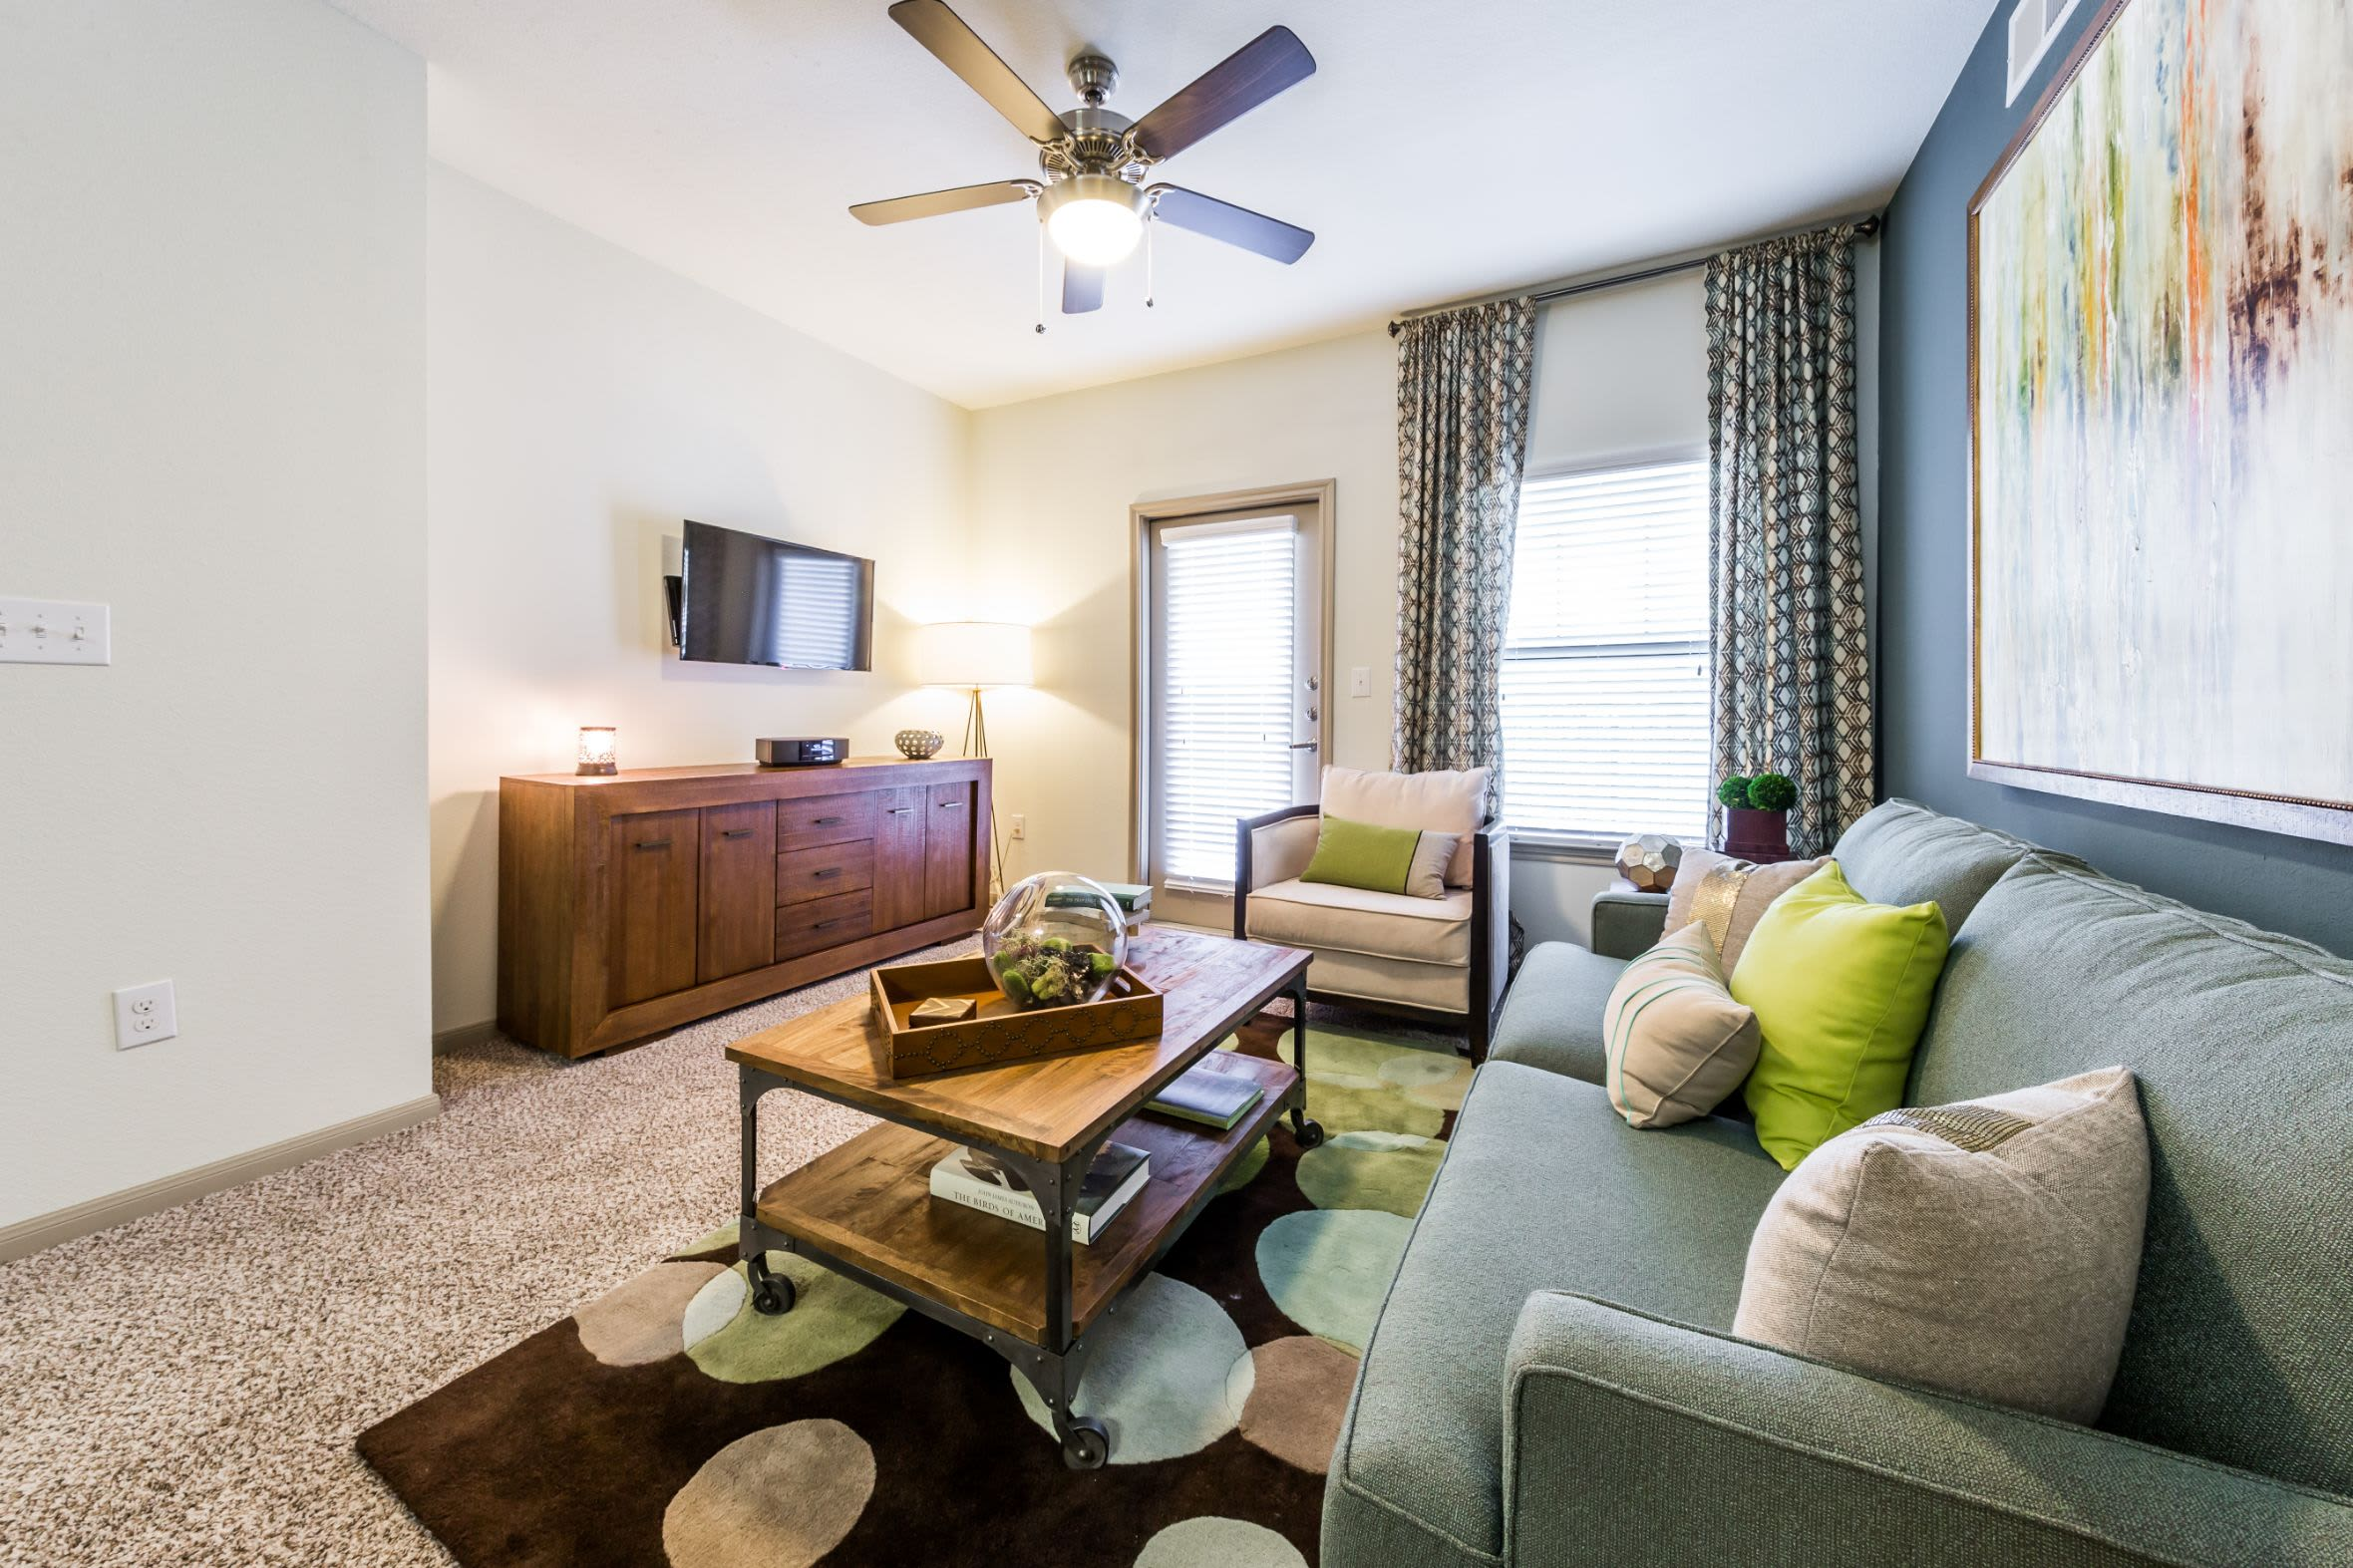 Living room with carpet floors and a ceiling fan at Marquis on Lakeline in Cedar Park, Texas